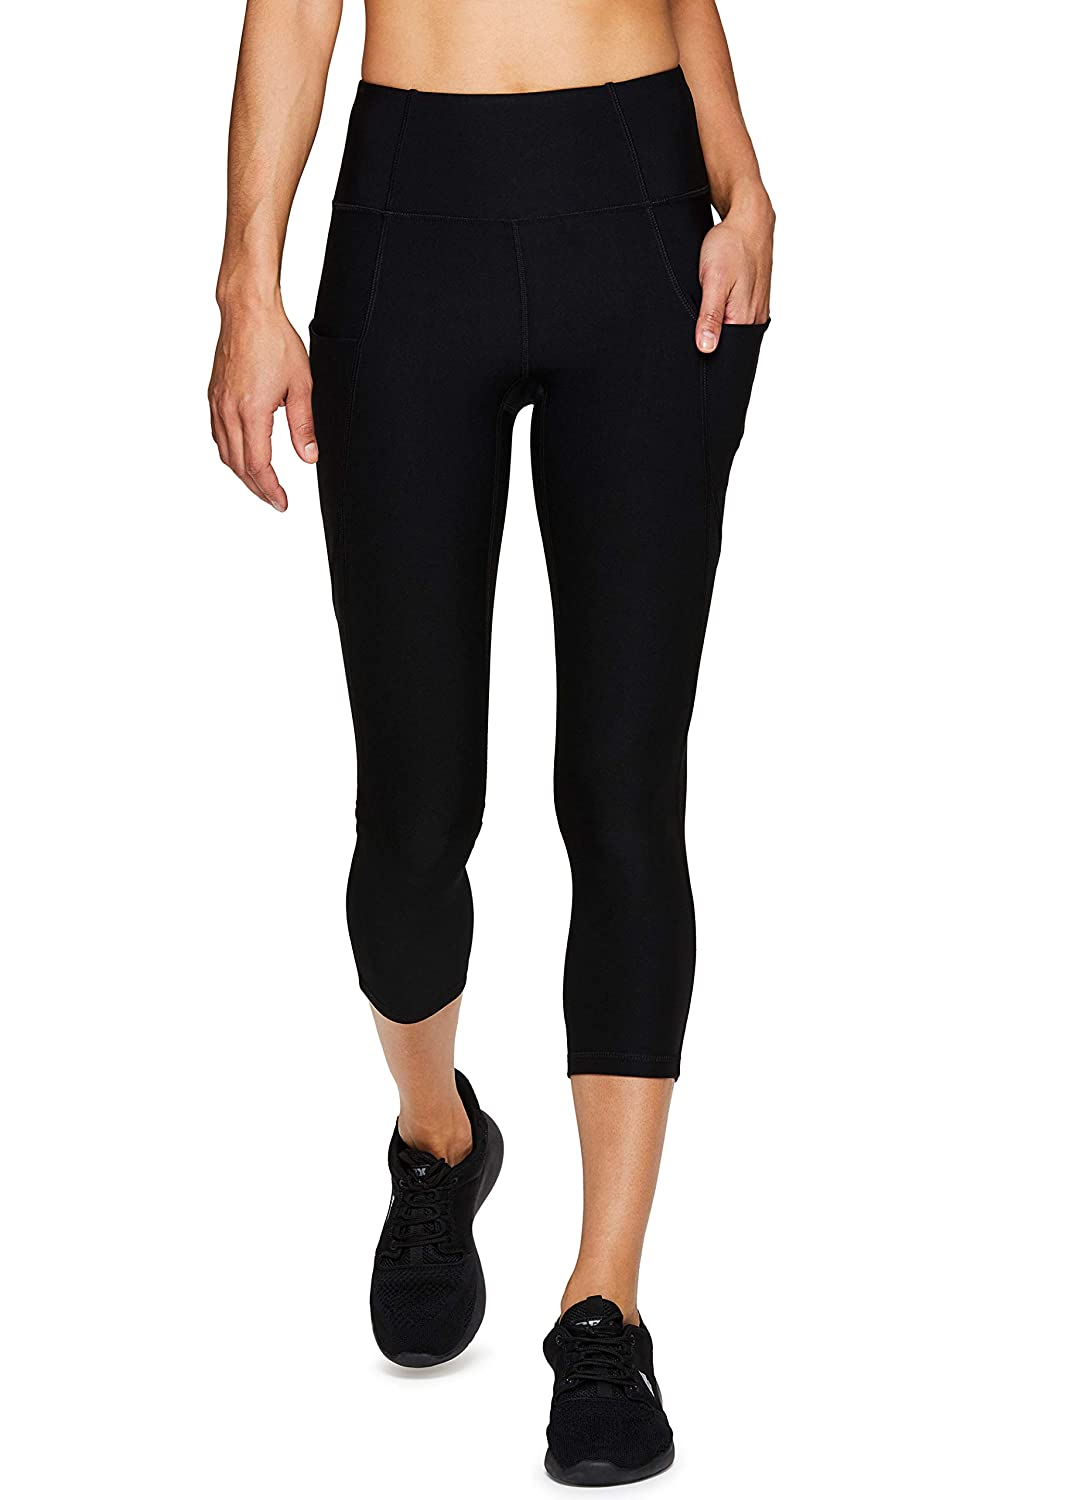 S19 Mix Black RBX Active Women's Seasonal Printed Capri Length Yoga Leggings